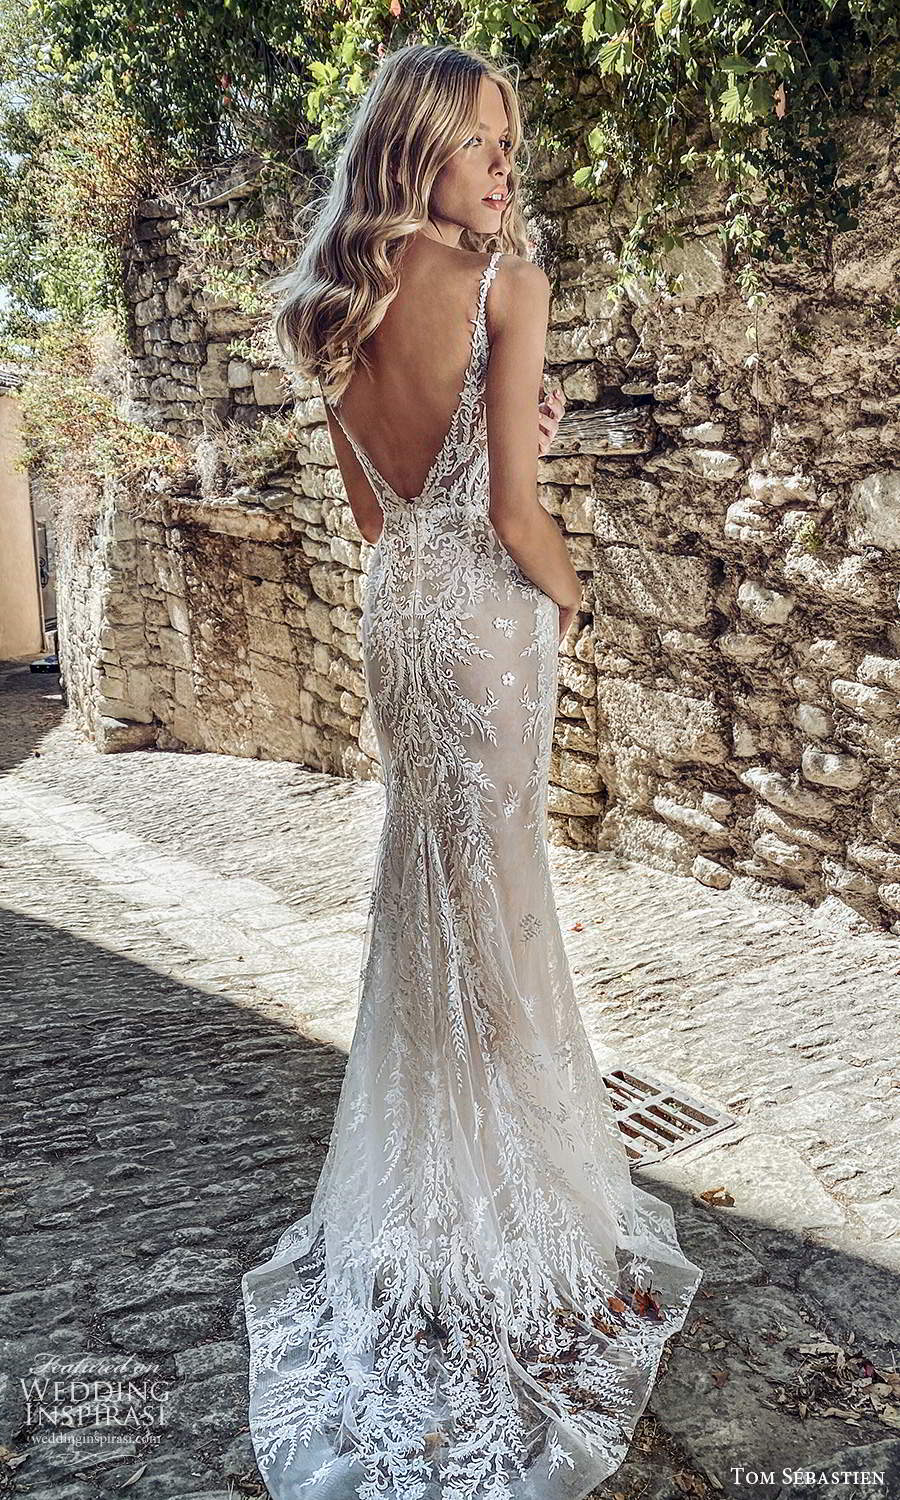 tom sebastien 2021 bridal provence sleeveless straps v neckline fully embellished lace sheath mermaid wedding dress chapel train (10) bv